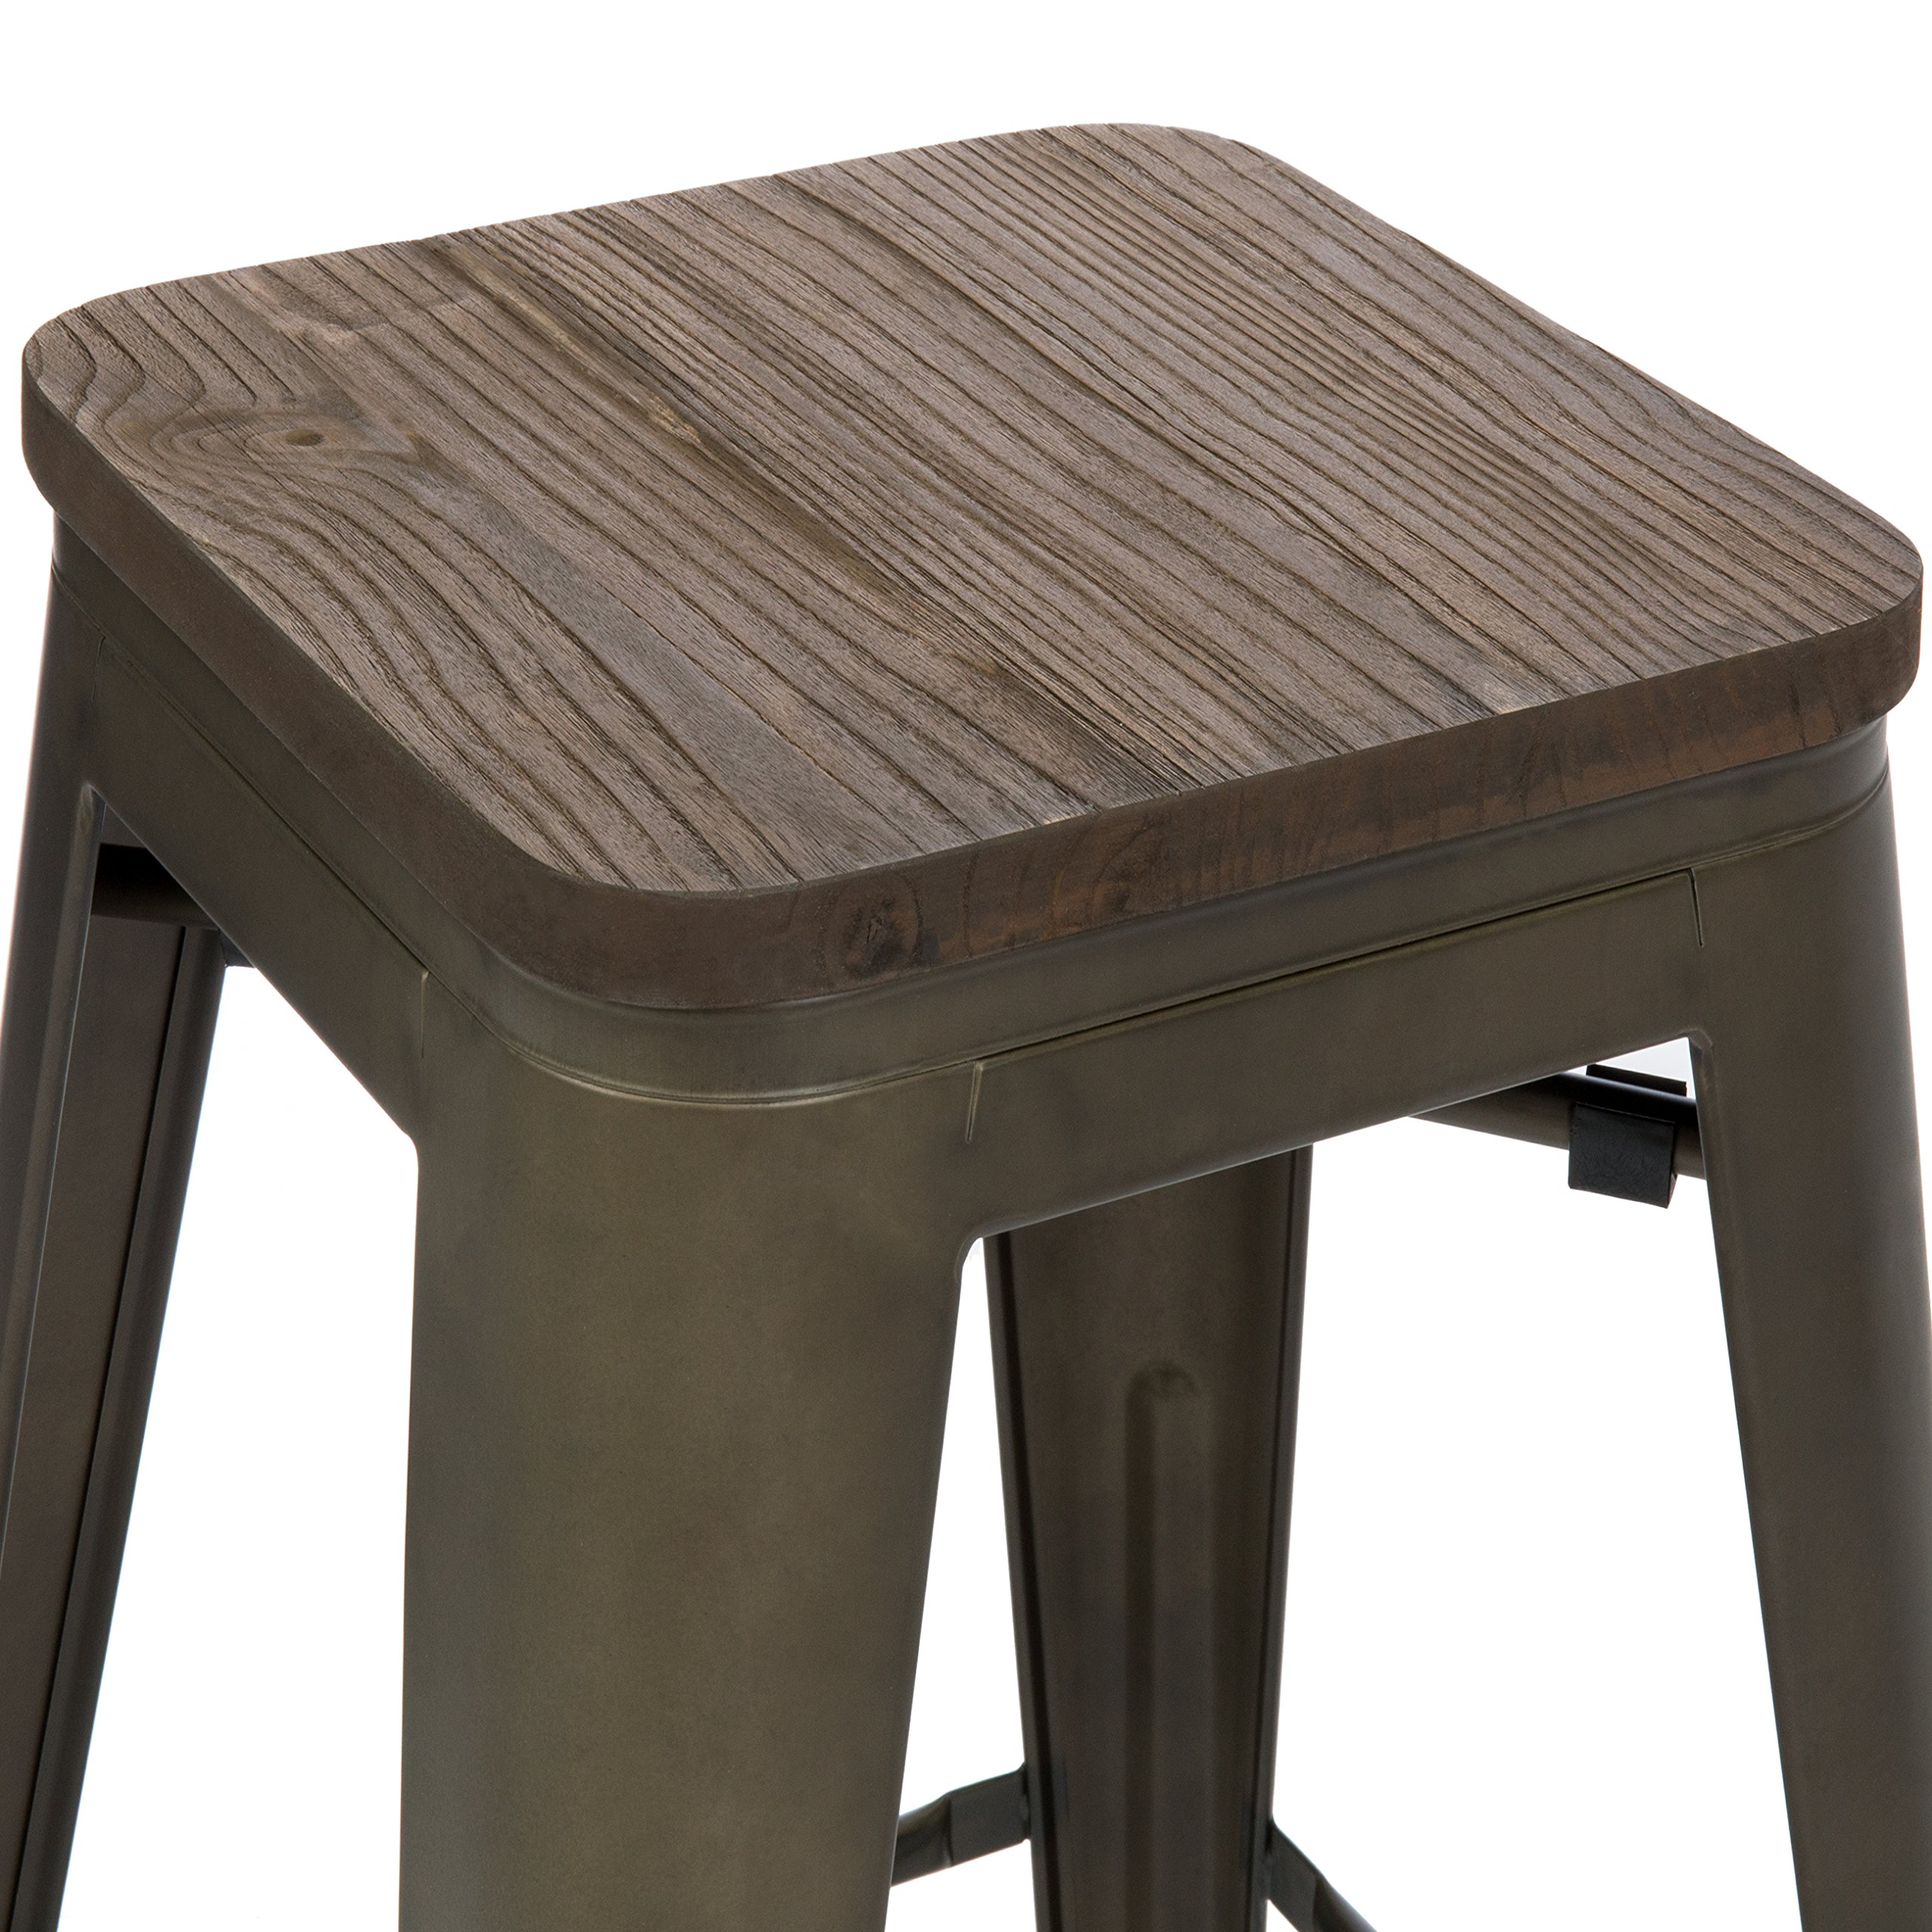 Best Choice Products 24in Set of 4 Stackable Industrial Distressed Metal Counter Height Bar Stools w/Wood Seat - Copper by Best Choice Products (Image #3)